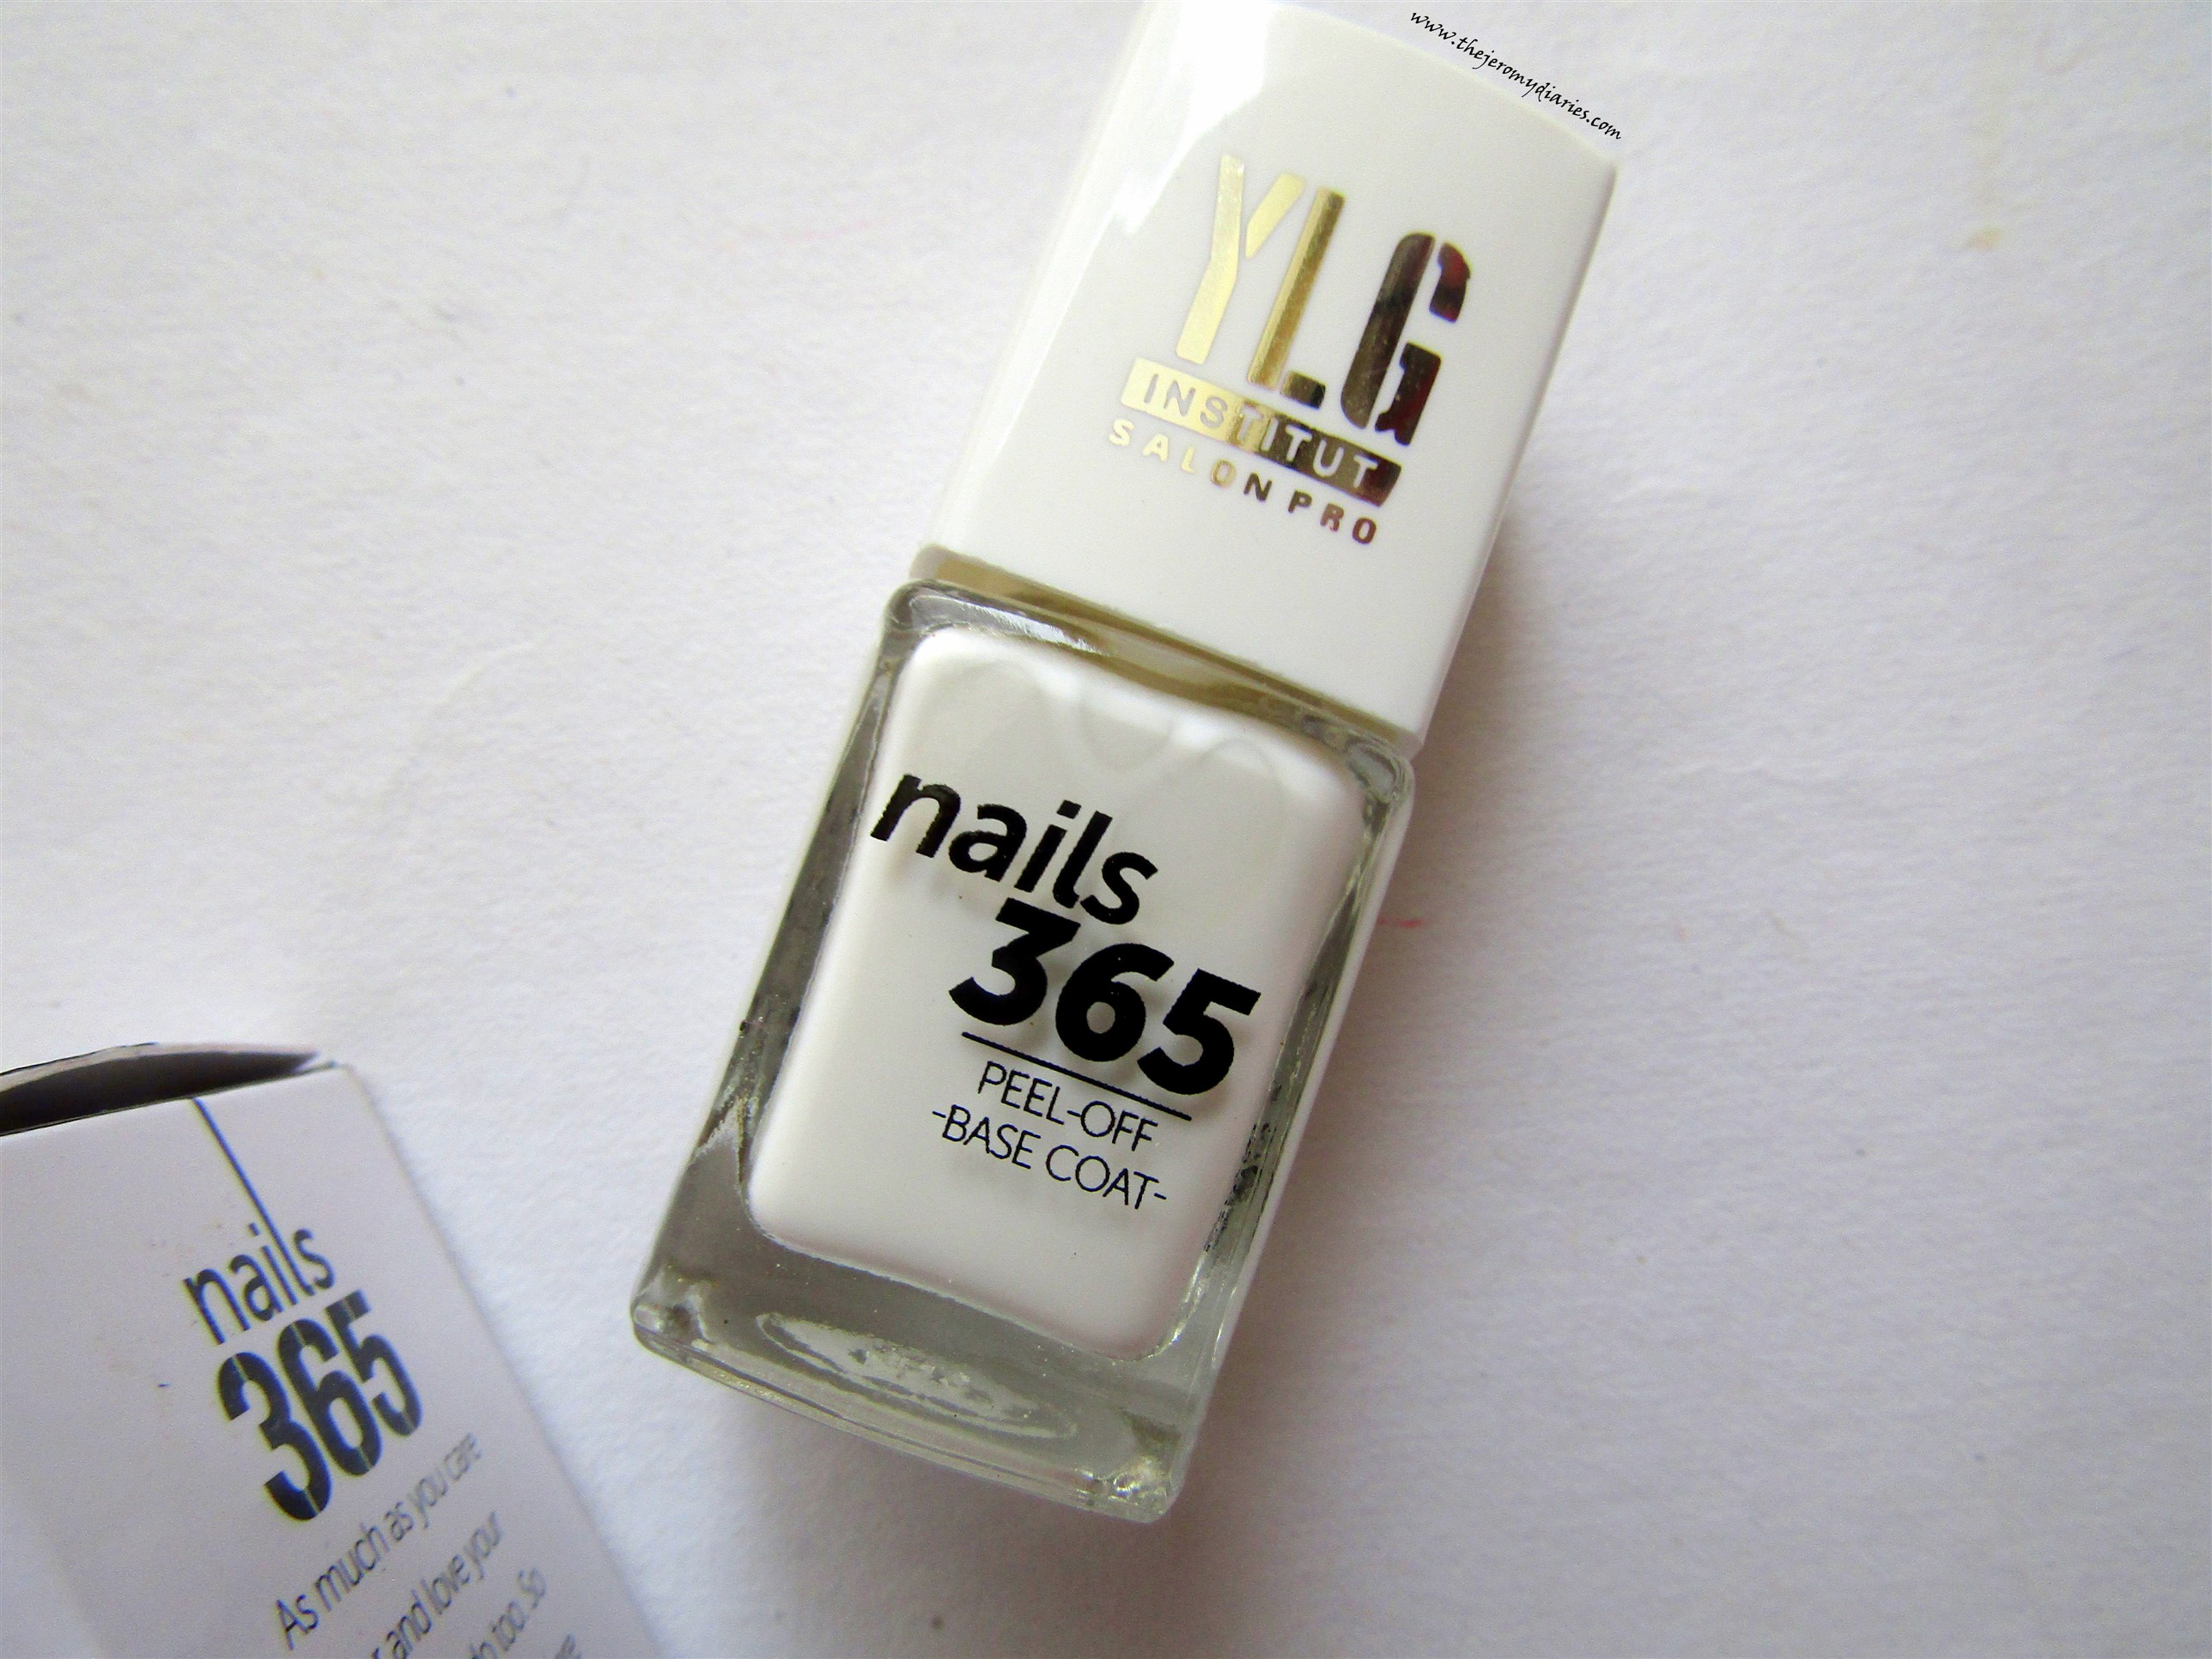 ylg nails 365 nail care range peel off base coat for easy removal of glitter nail paints